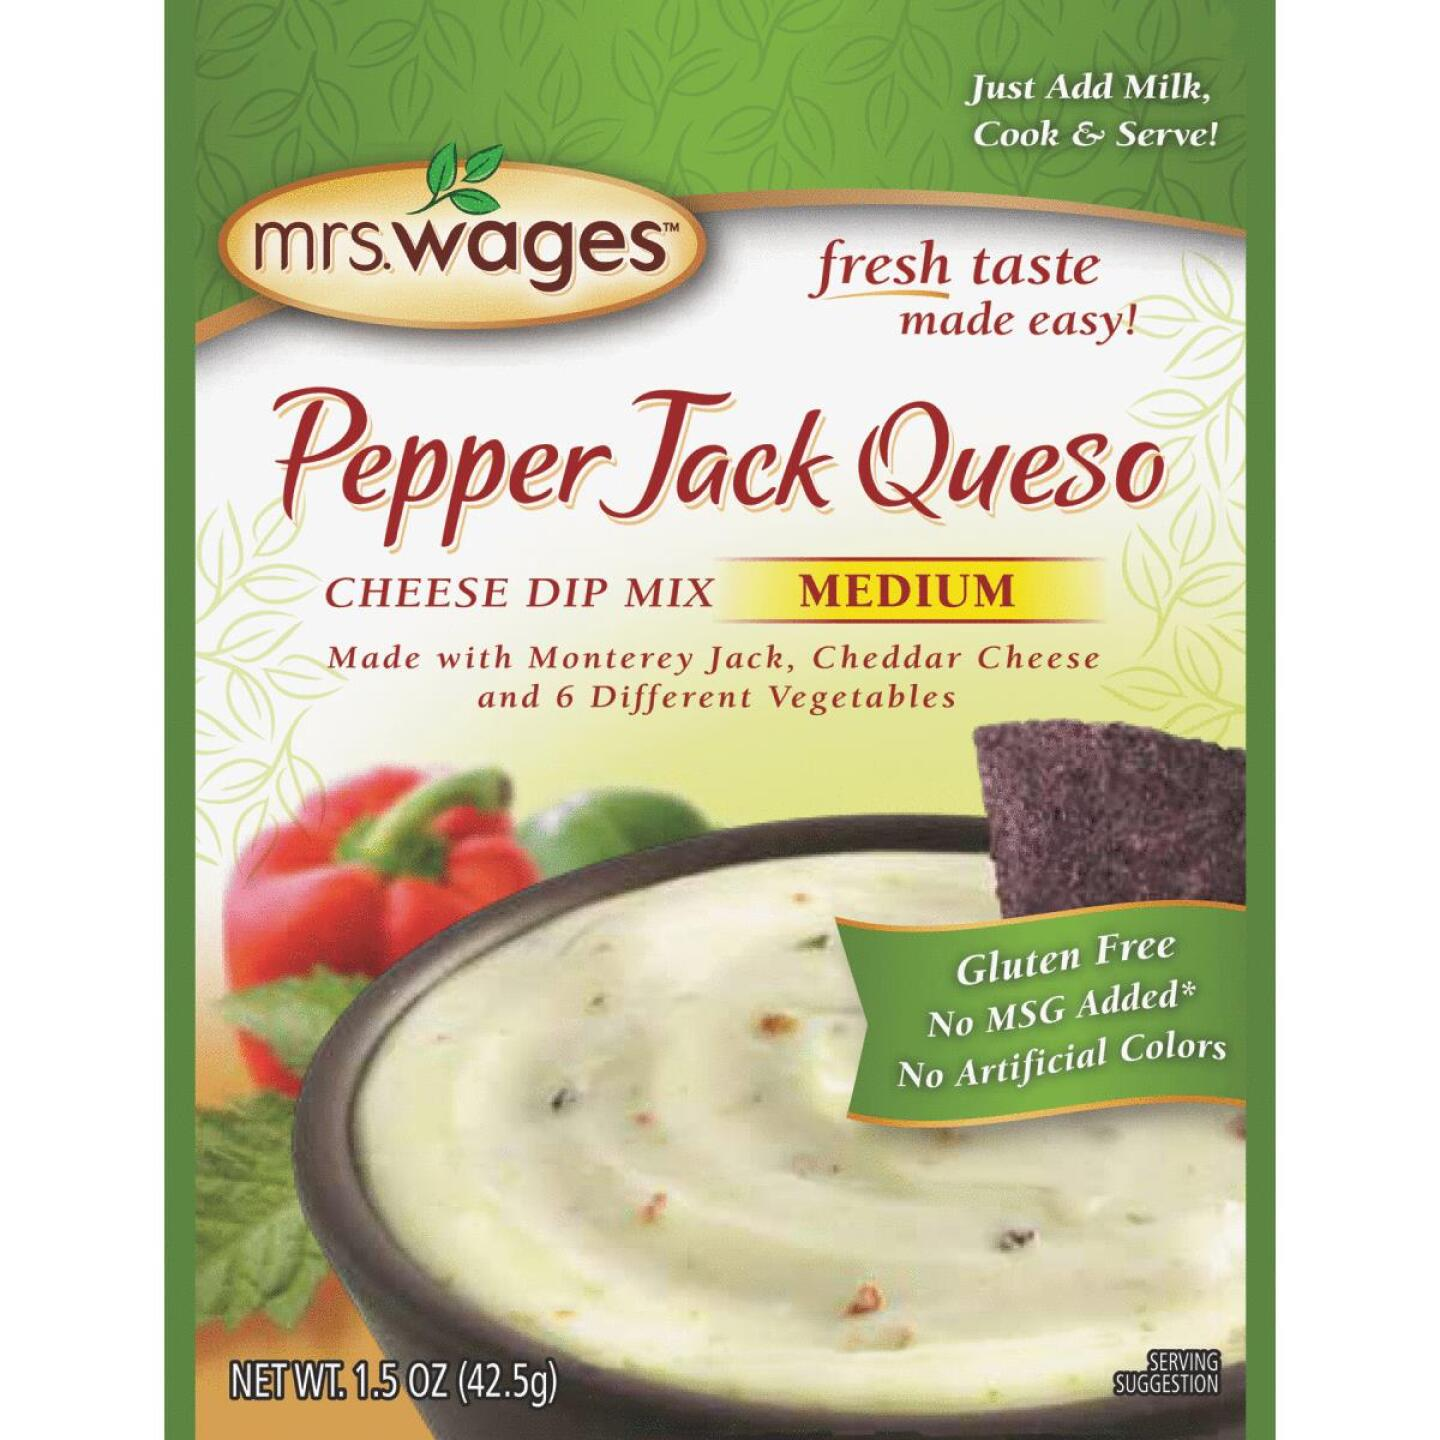 Mrs. Wages 1.5 Oz. Pepper Jack Queso Cheese Dip Mix Image 1